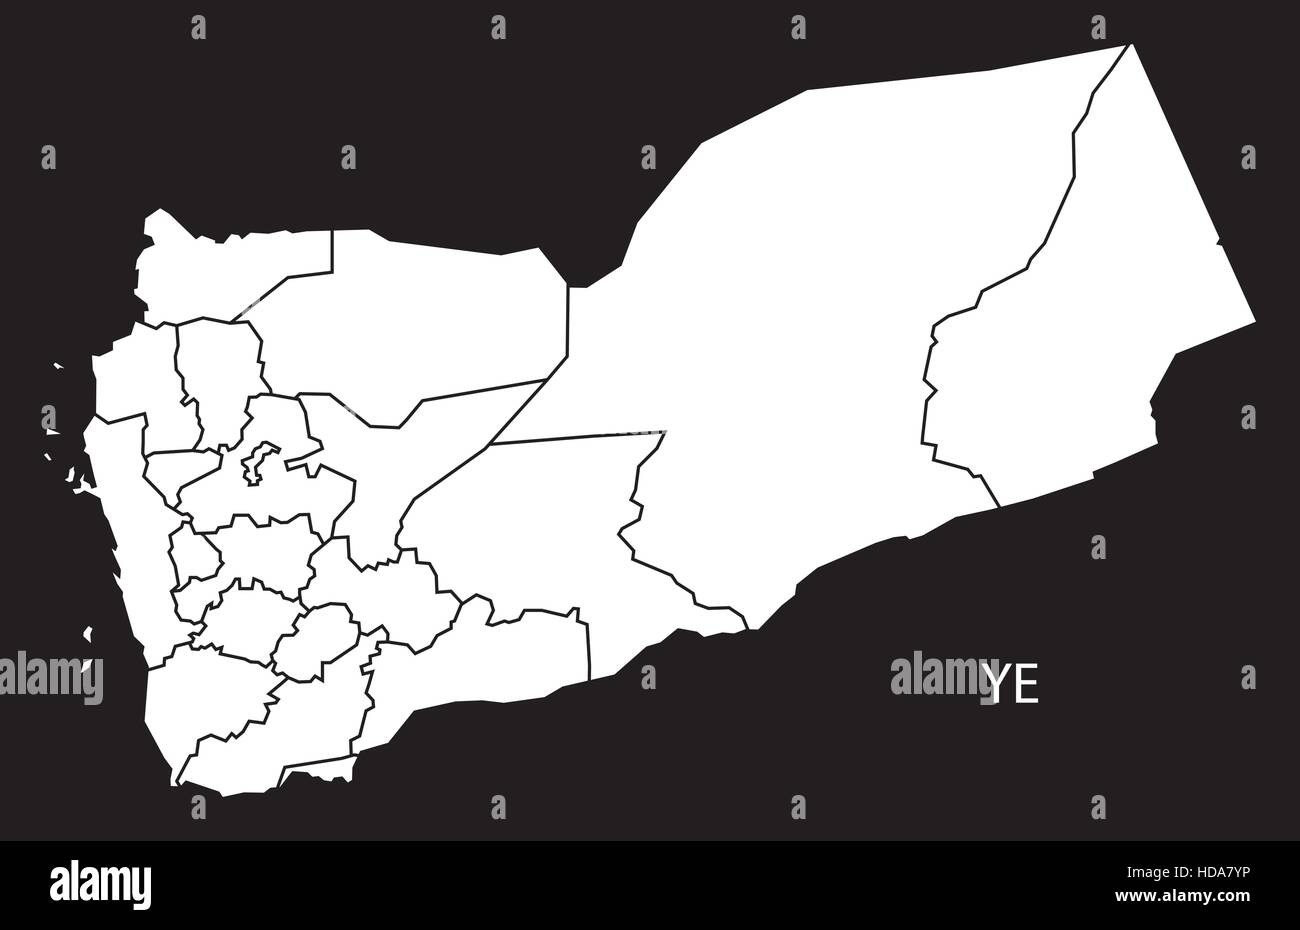 Yemen governorates Map black and white illustration Stock Vector